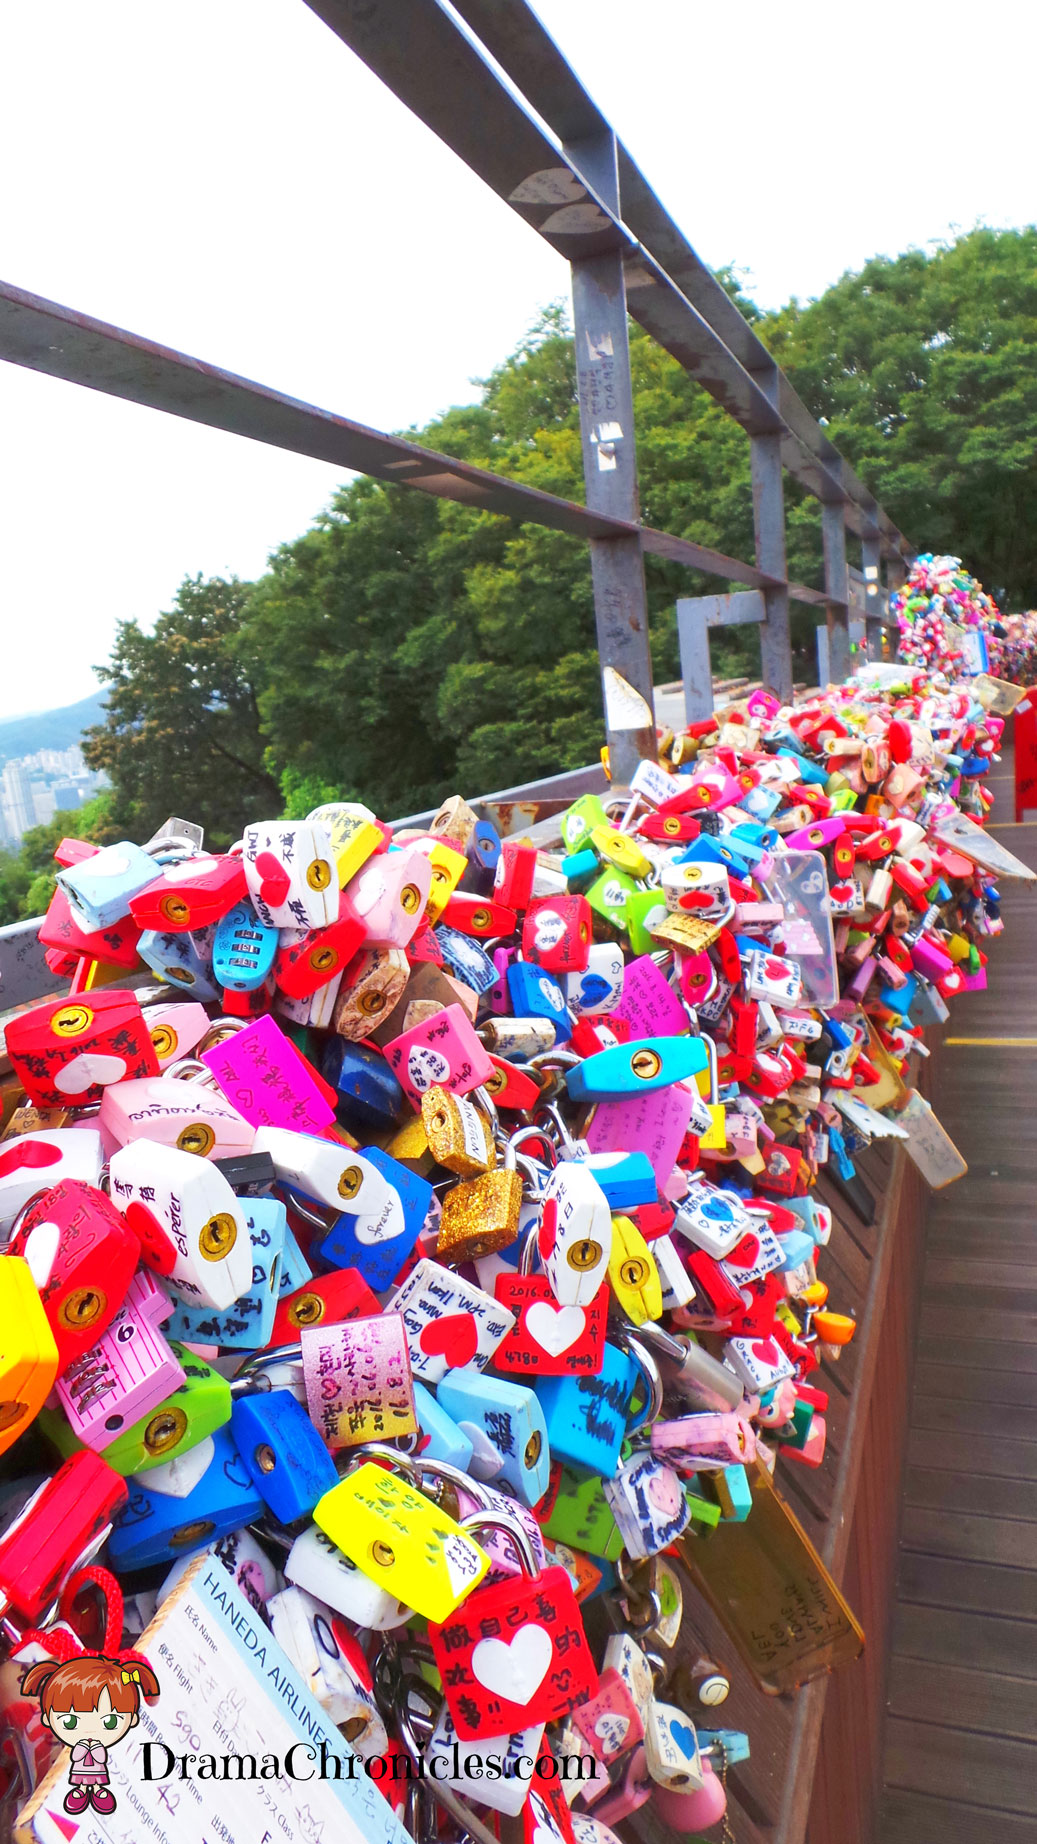 namsan-tower-24-drama-chronicles